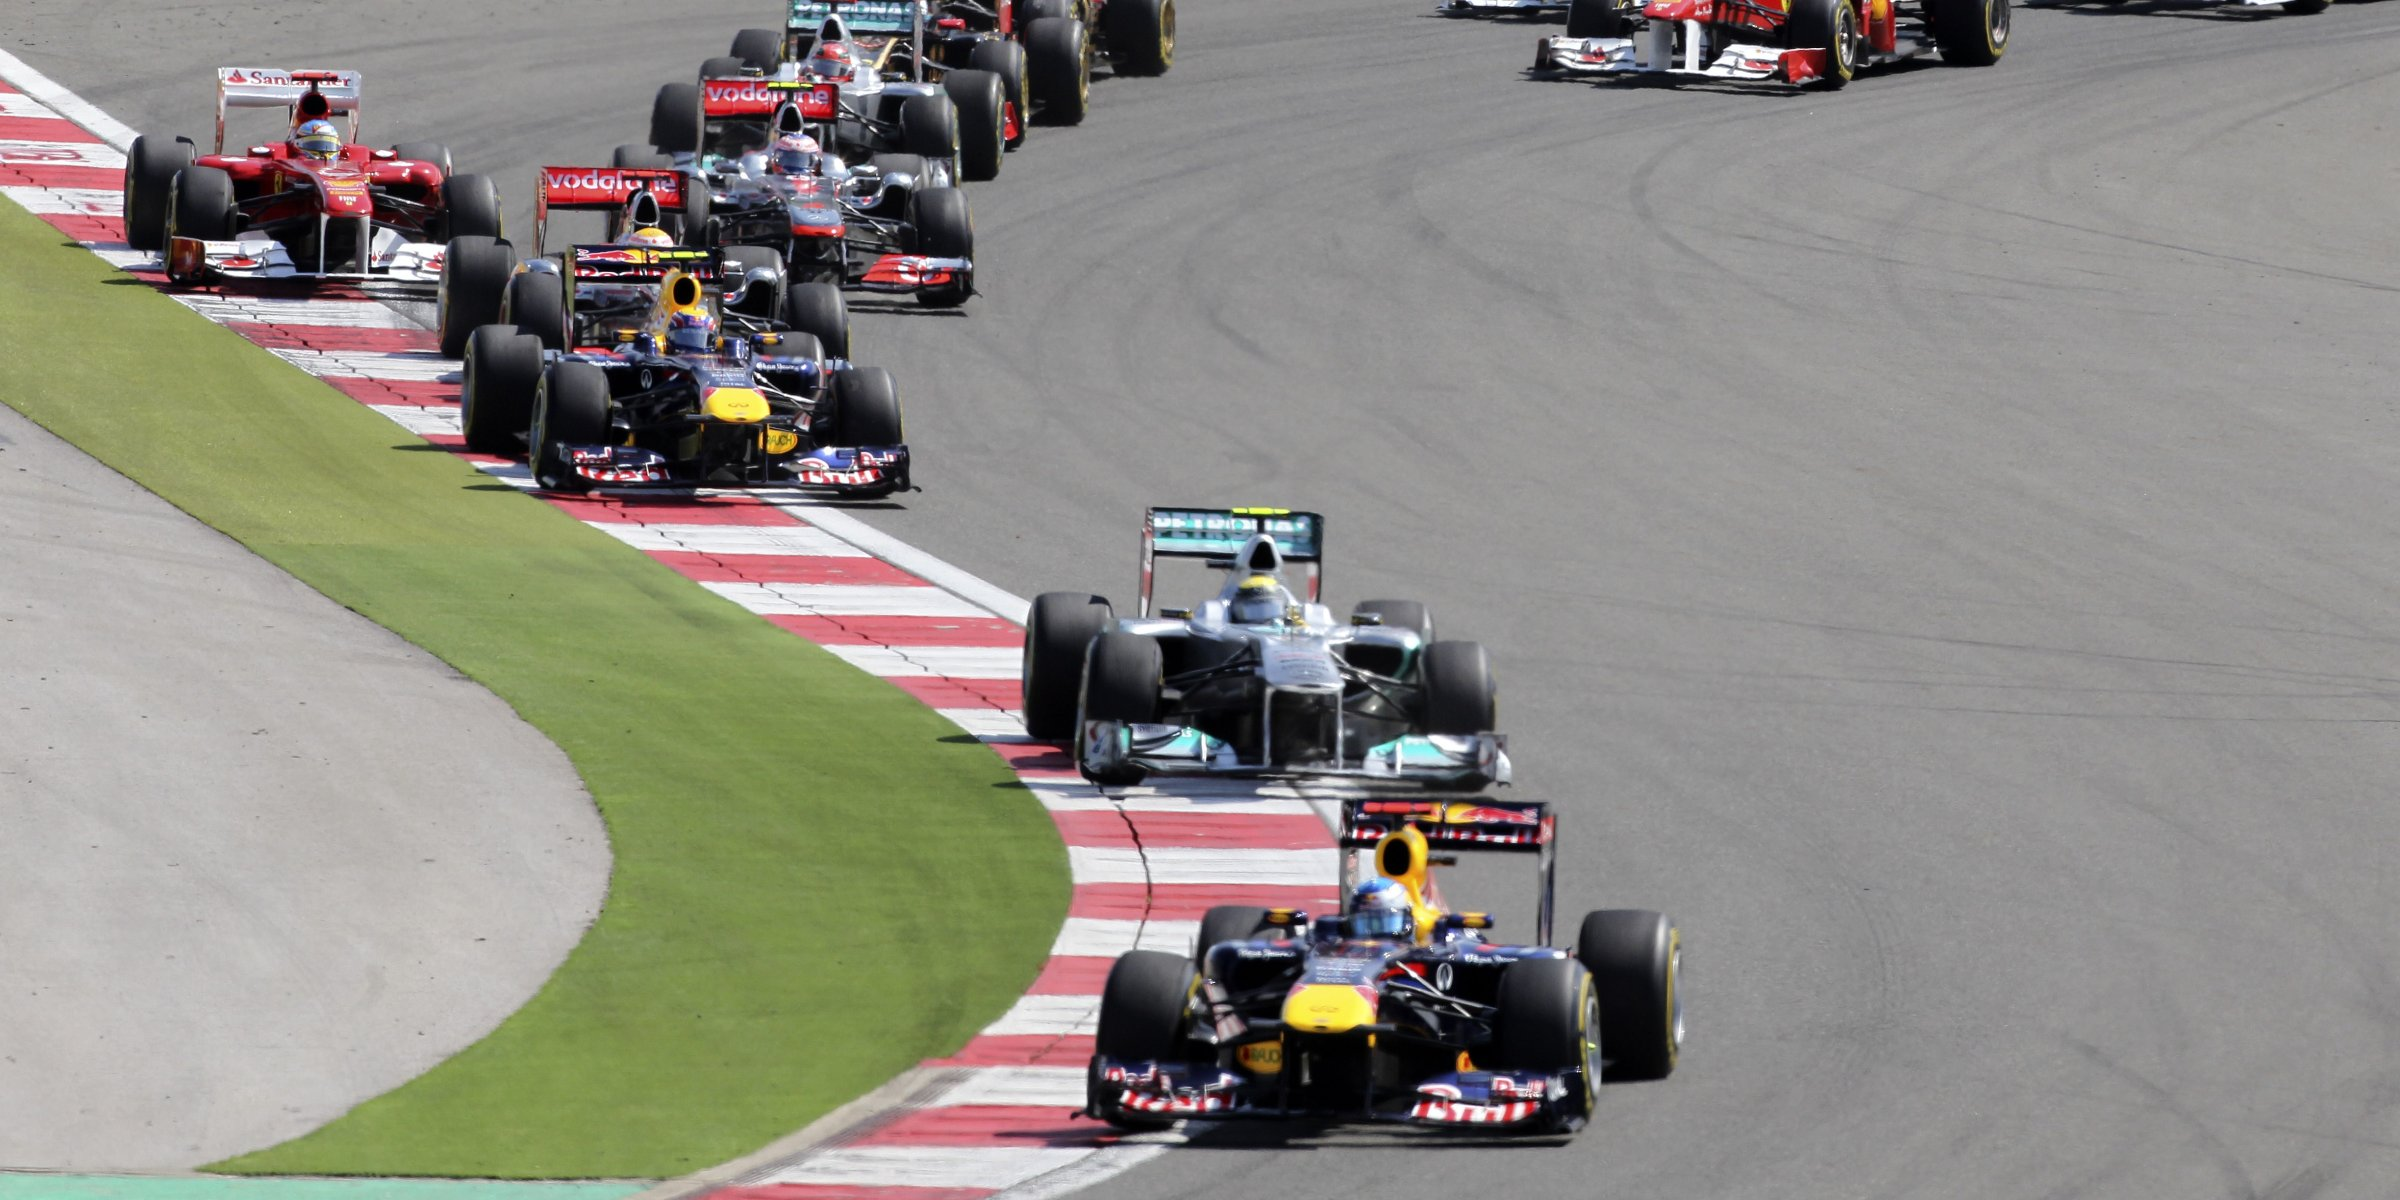 Turkish Grand Prix Set To Make F1 Return Reports Say Daily Sabah